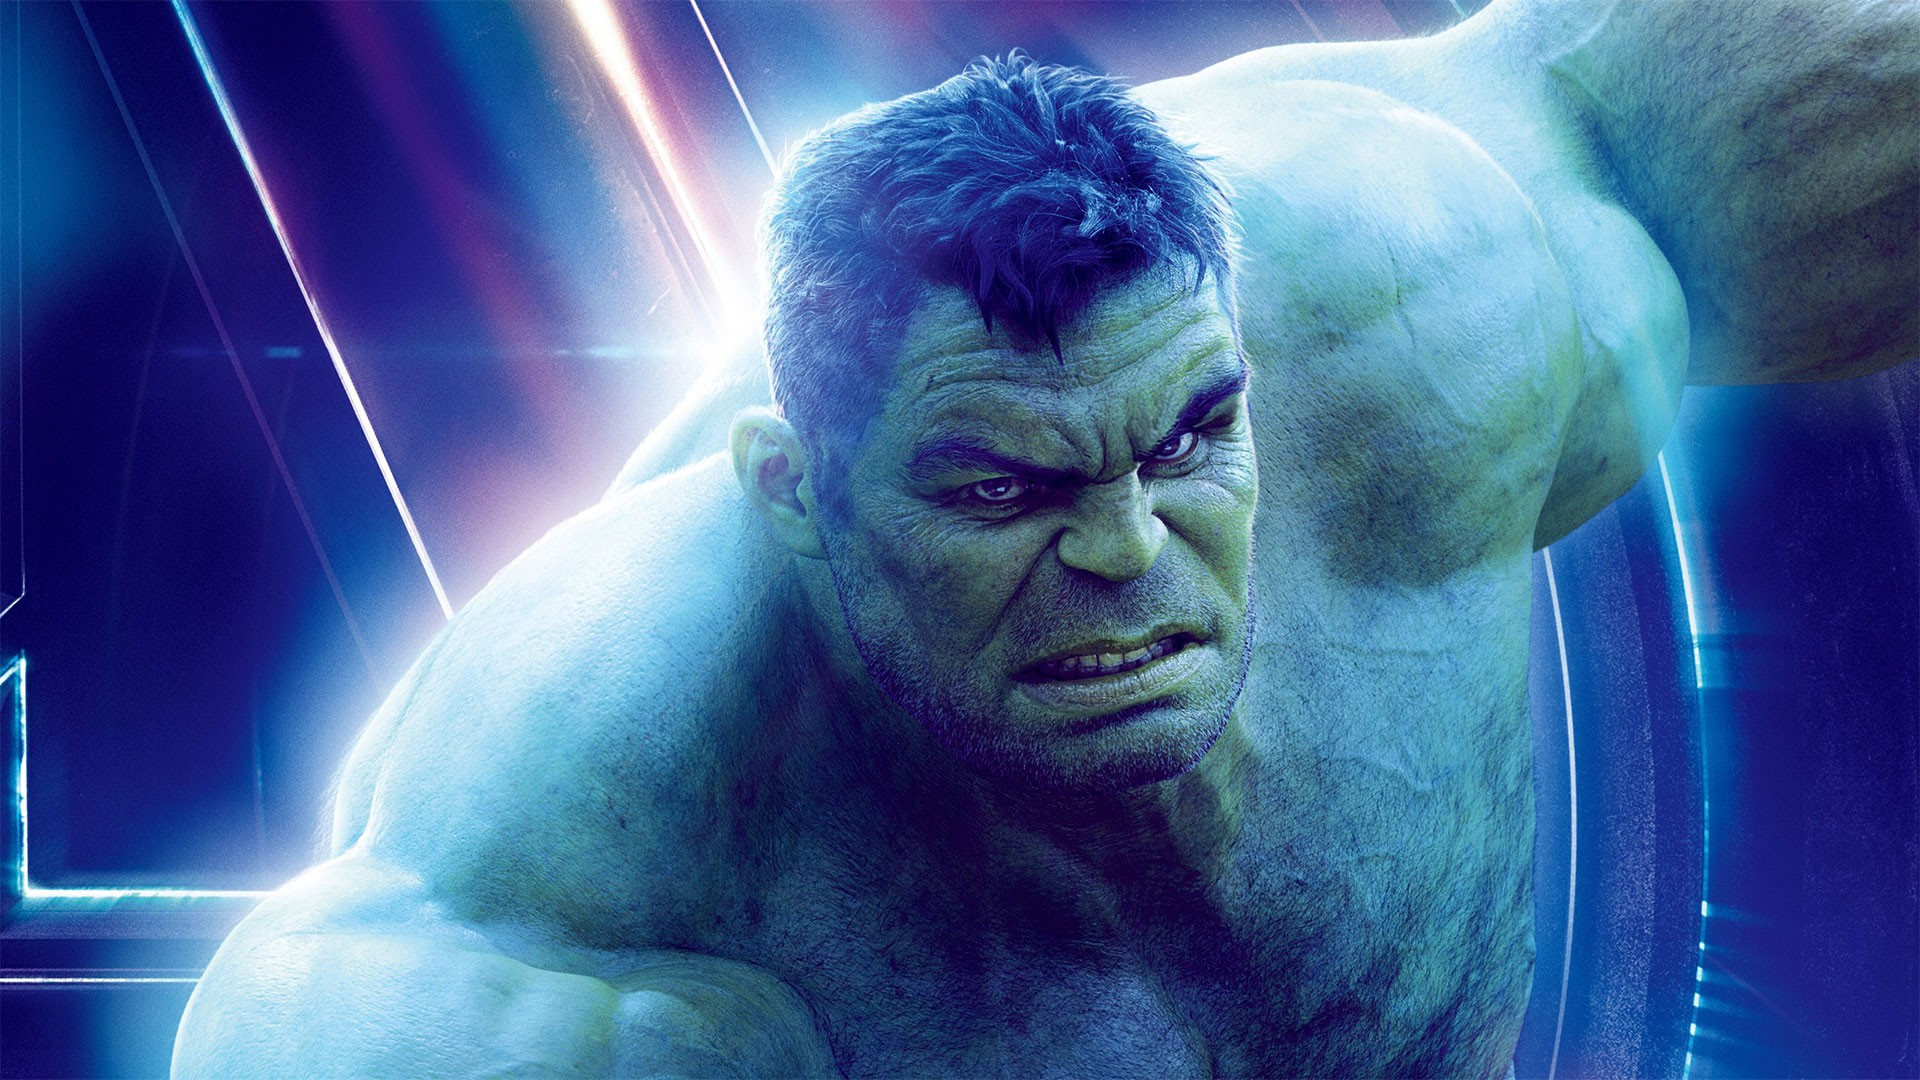 Hulk Avengers Endgame Wallpaper HD 2019 Movie Poster Wallpaper HD 1920x1080